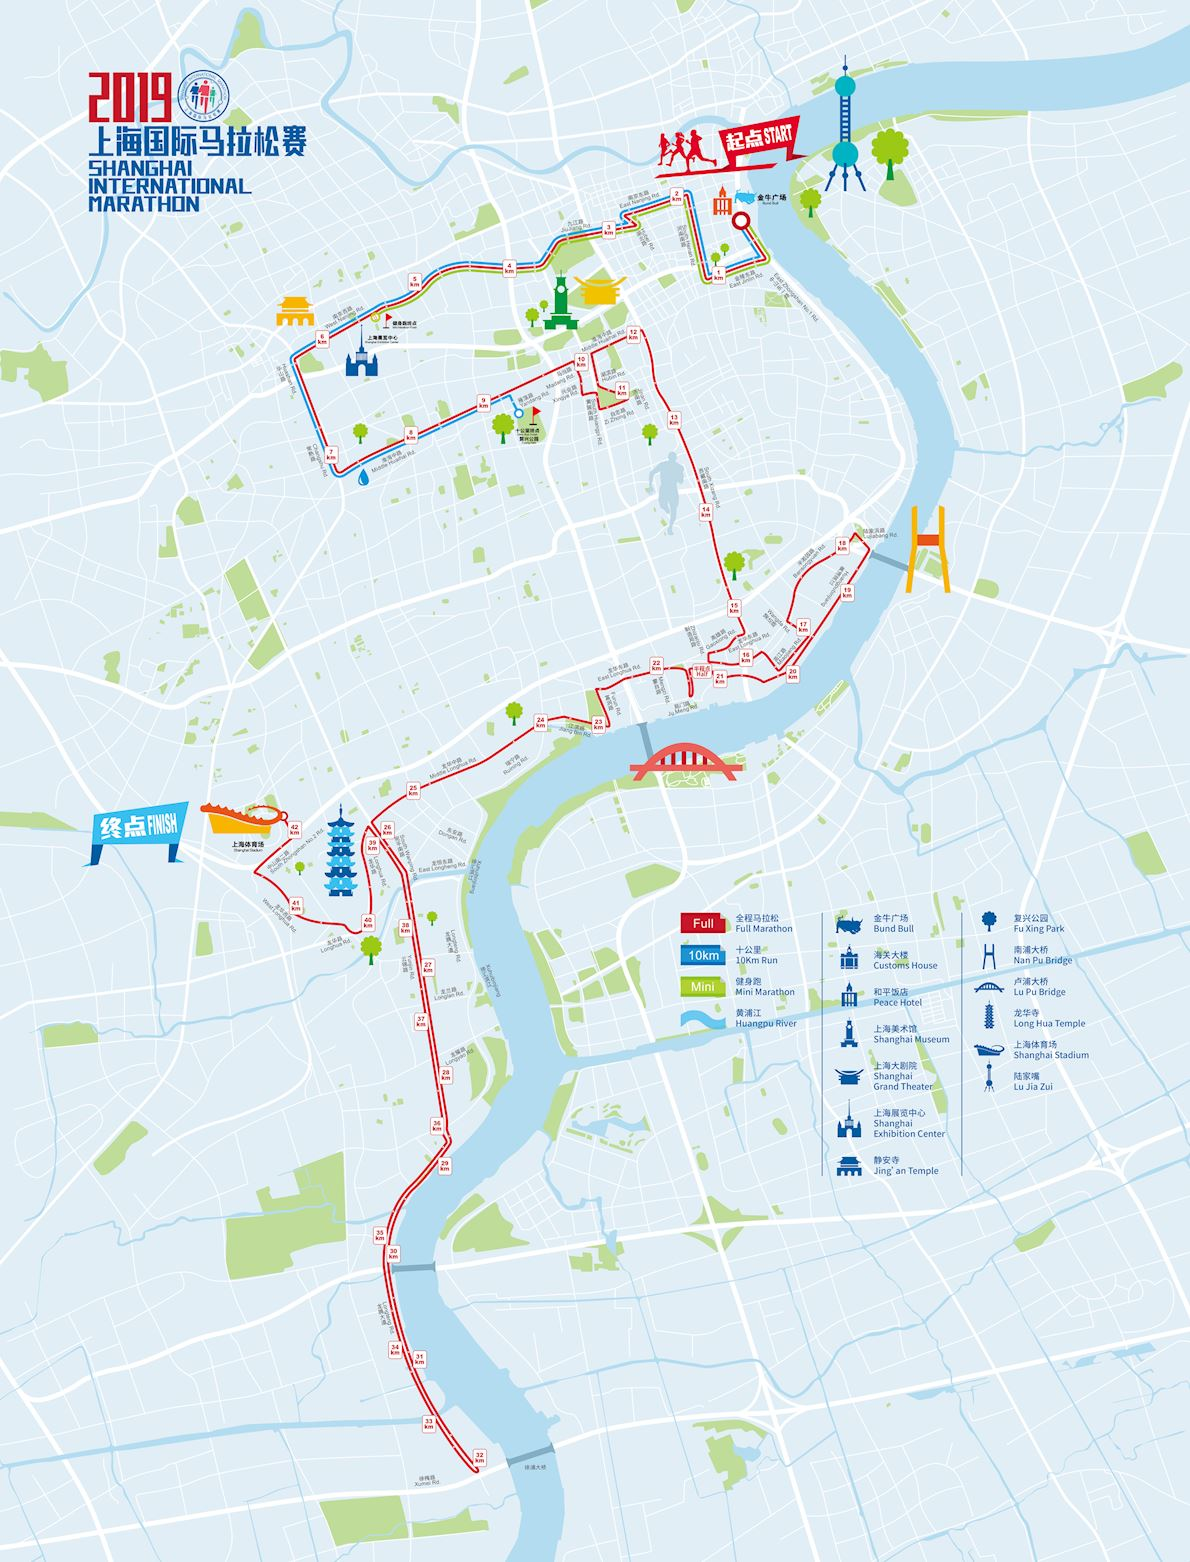 Shanghai International Marathon Mappa del percorso